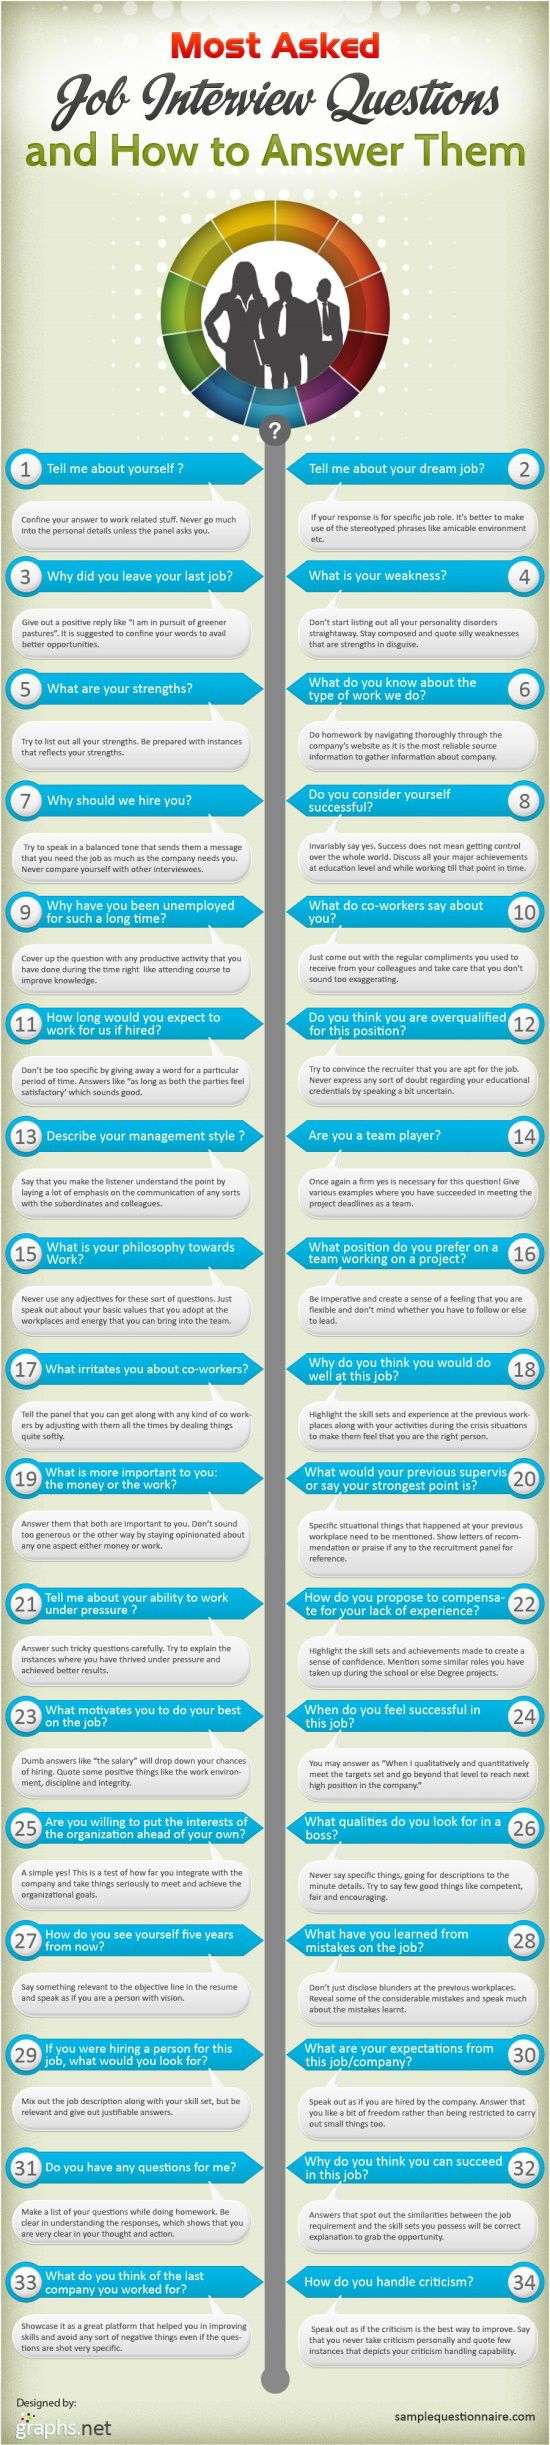 Most asked interview questions. These would be good tips if I could read them without cringing at all the bad grammar.